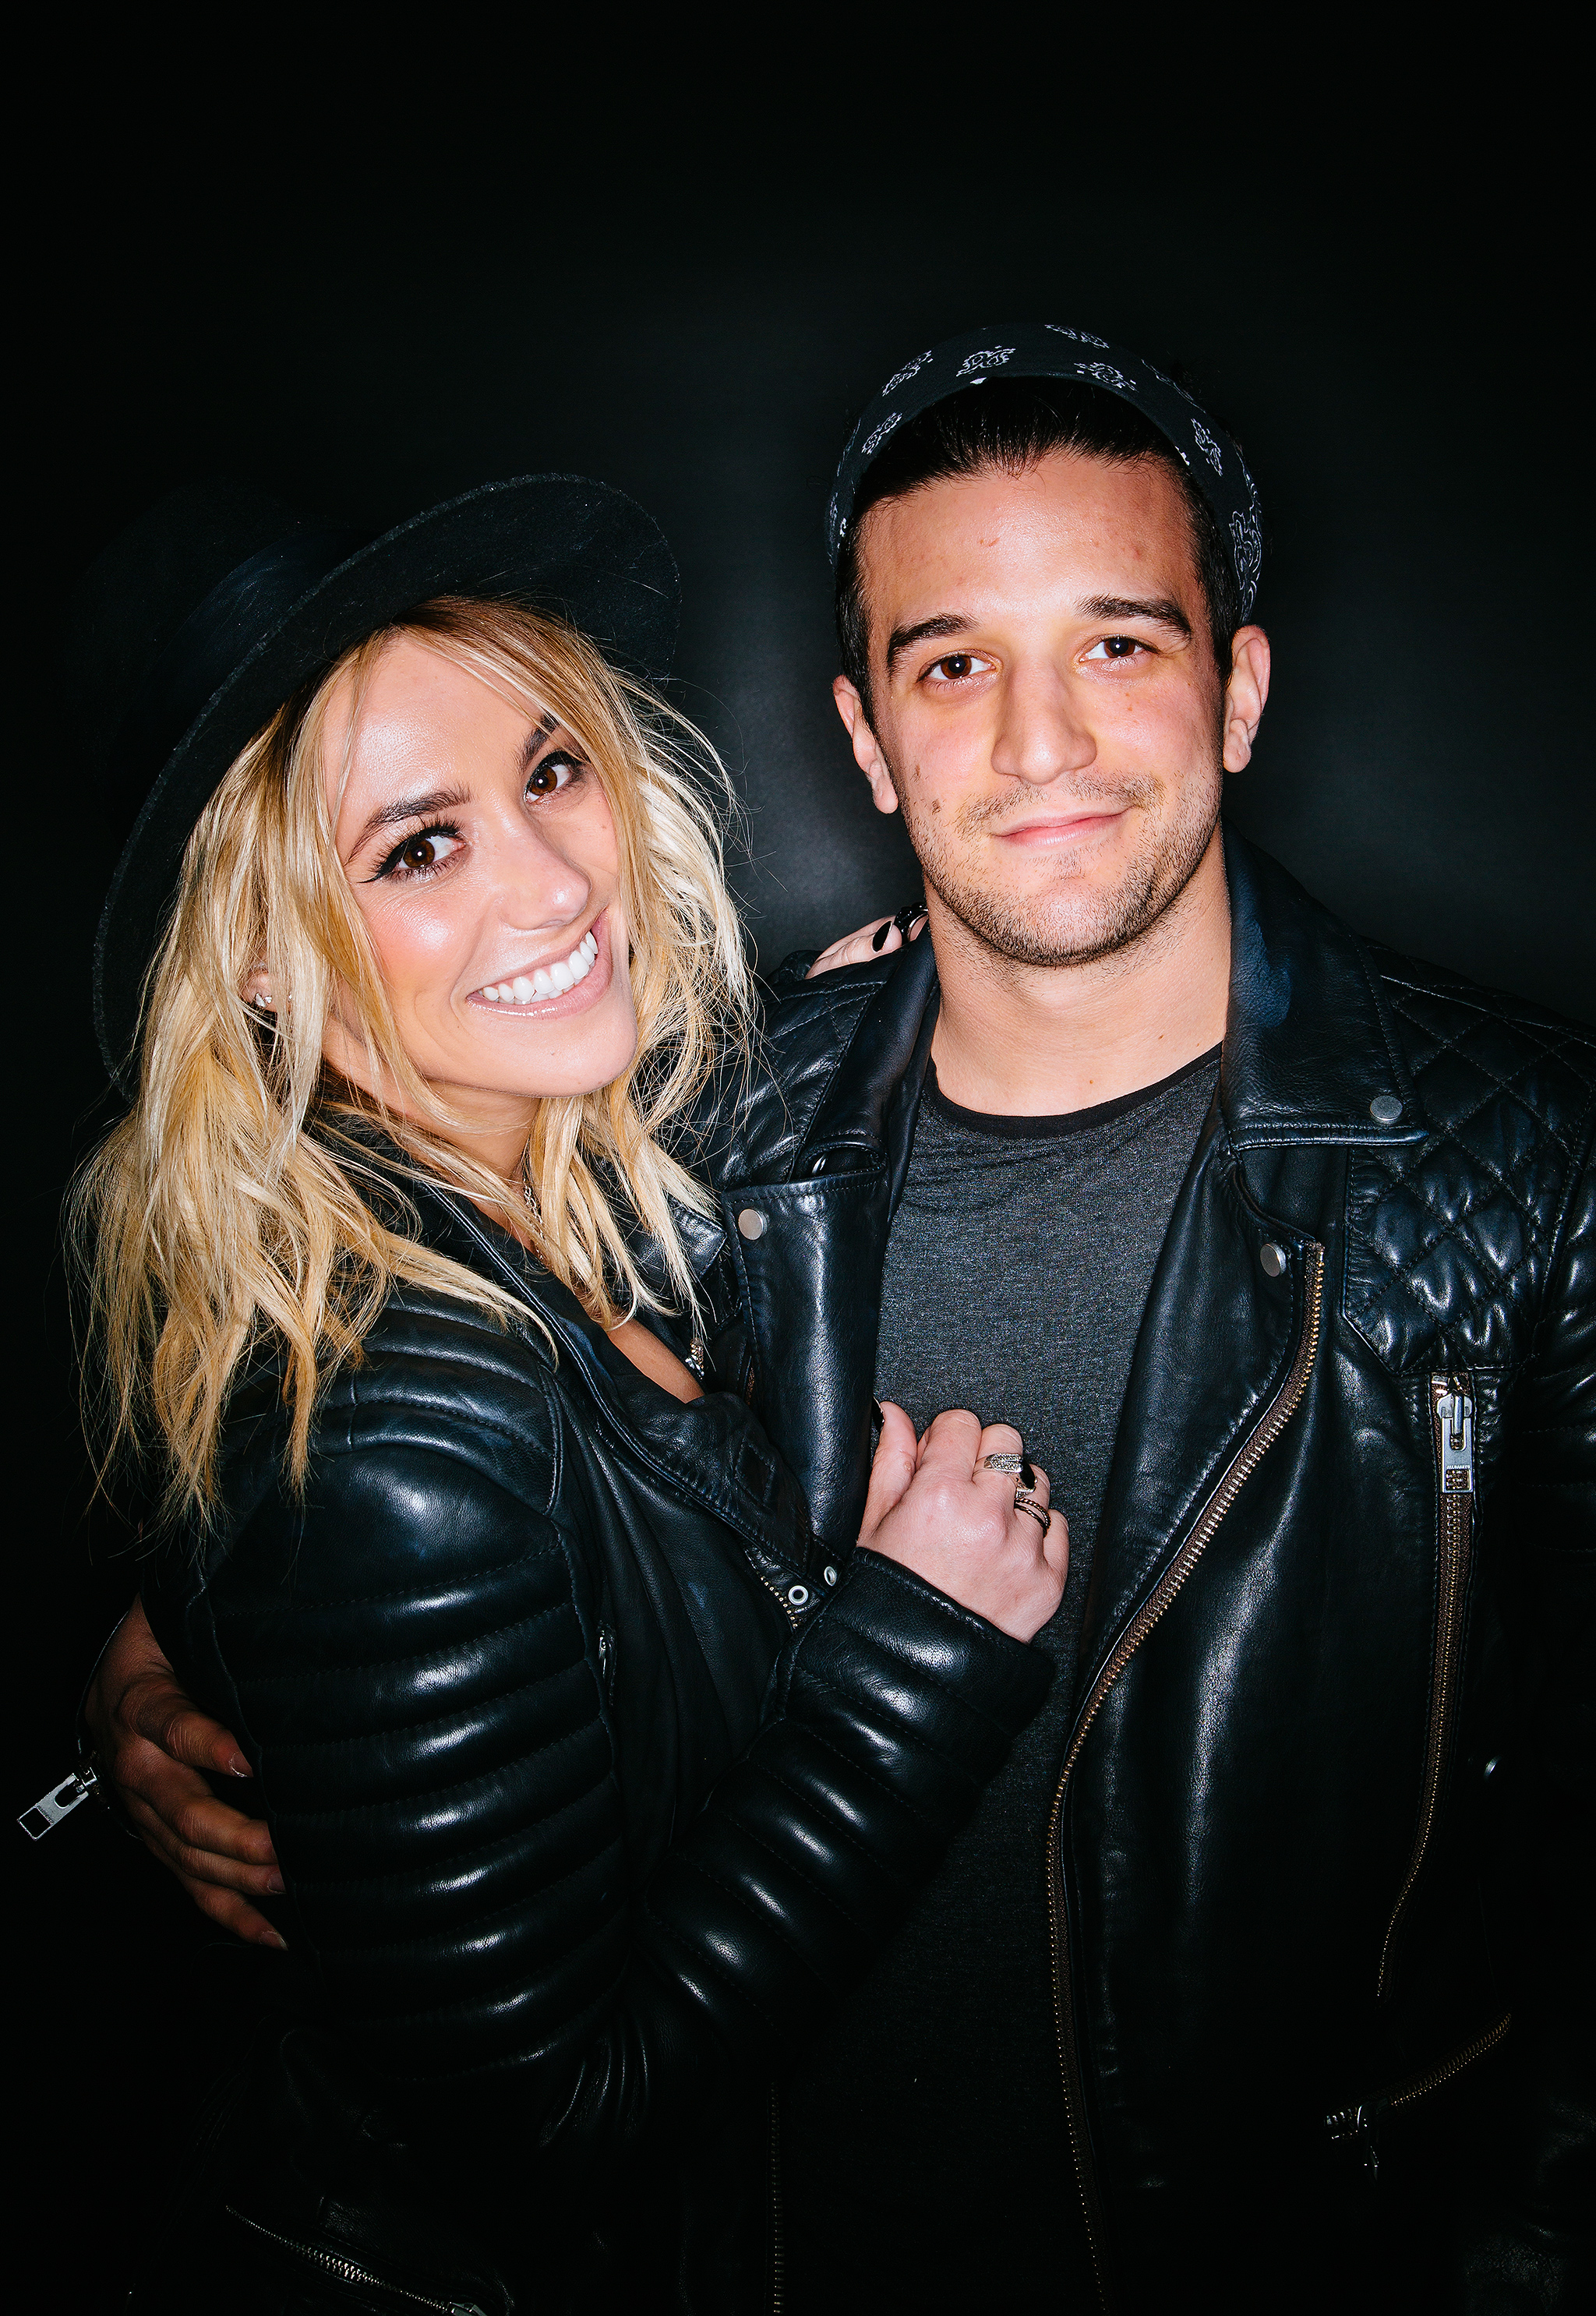 BC Jean and Mark Ballas